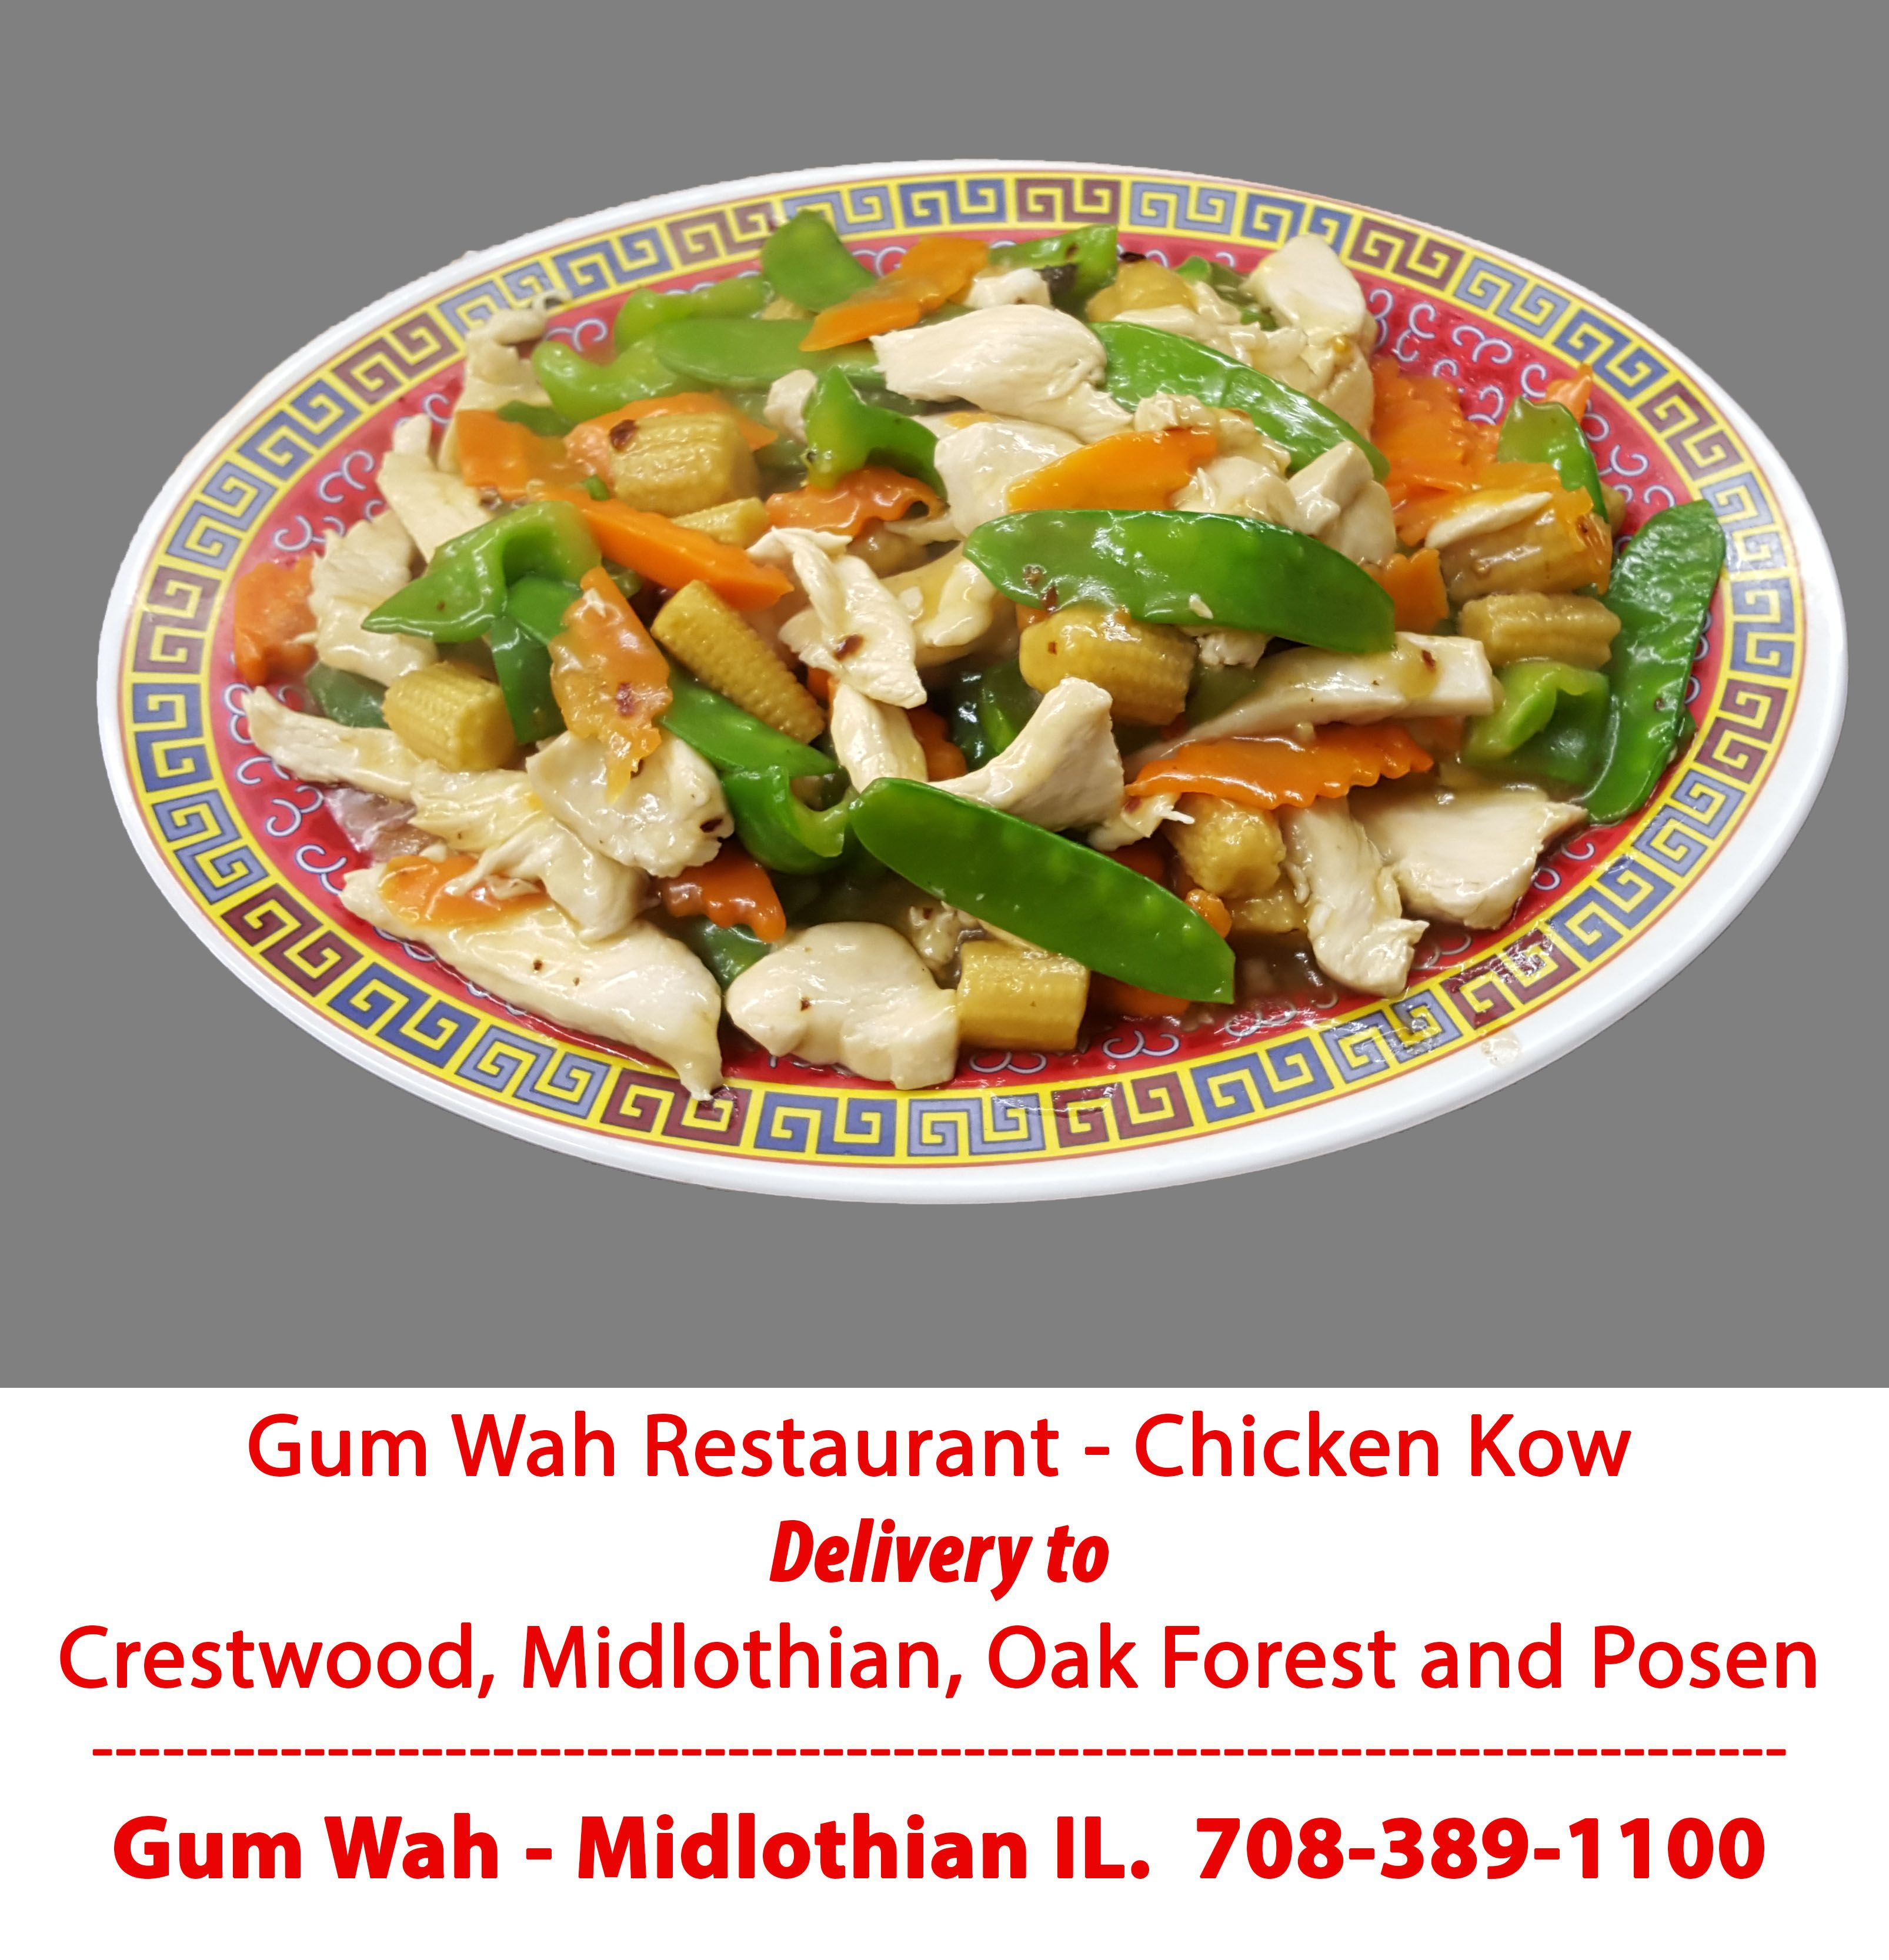 Welcome To Gum Wah Restaurant Midlothian Illinois Best Chinese Food Chinese Dishes Recipes Food Dishes